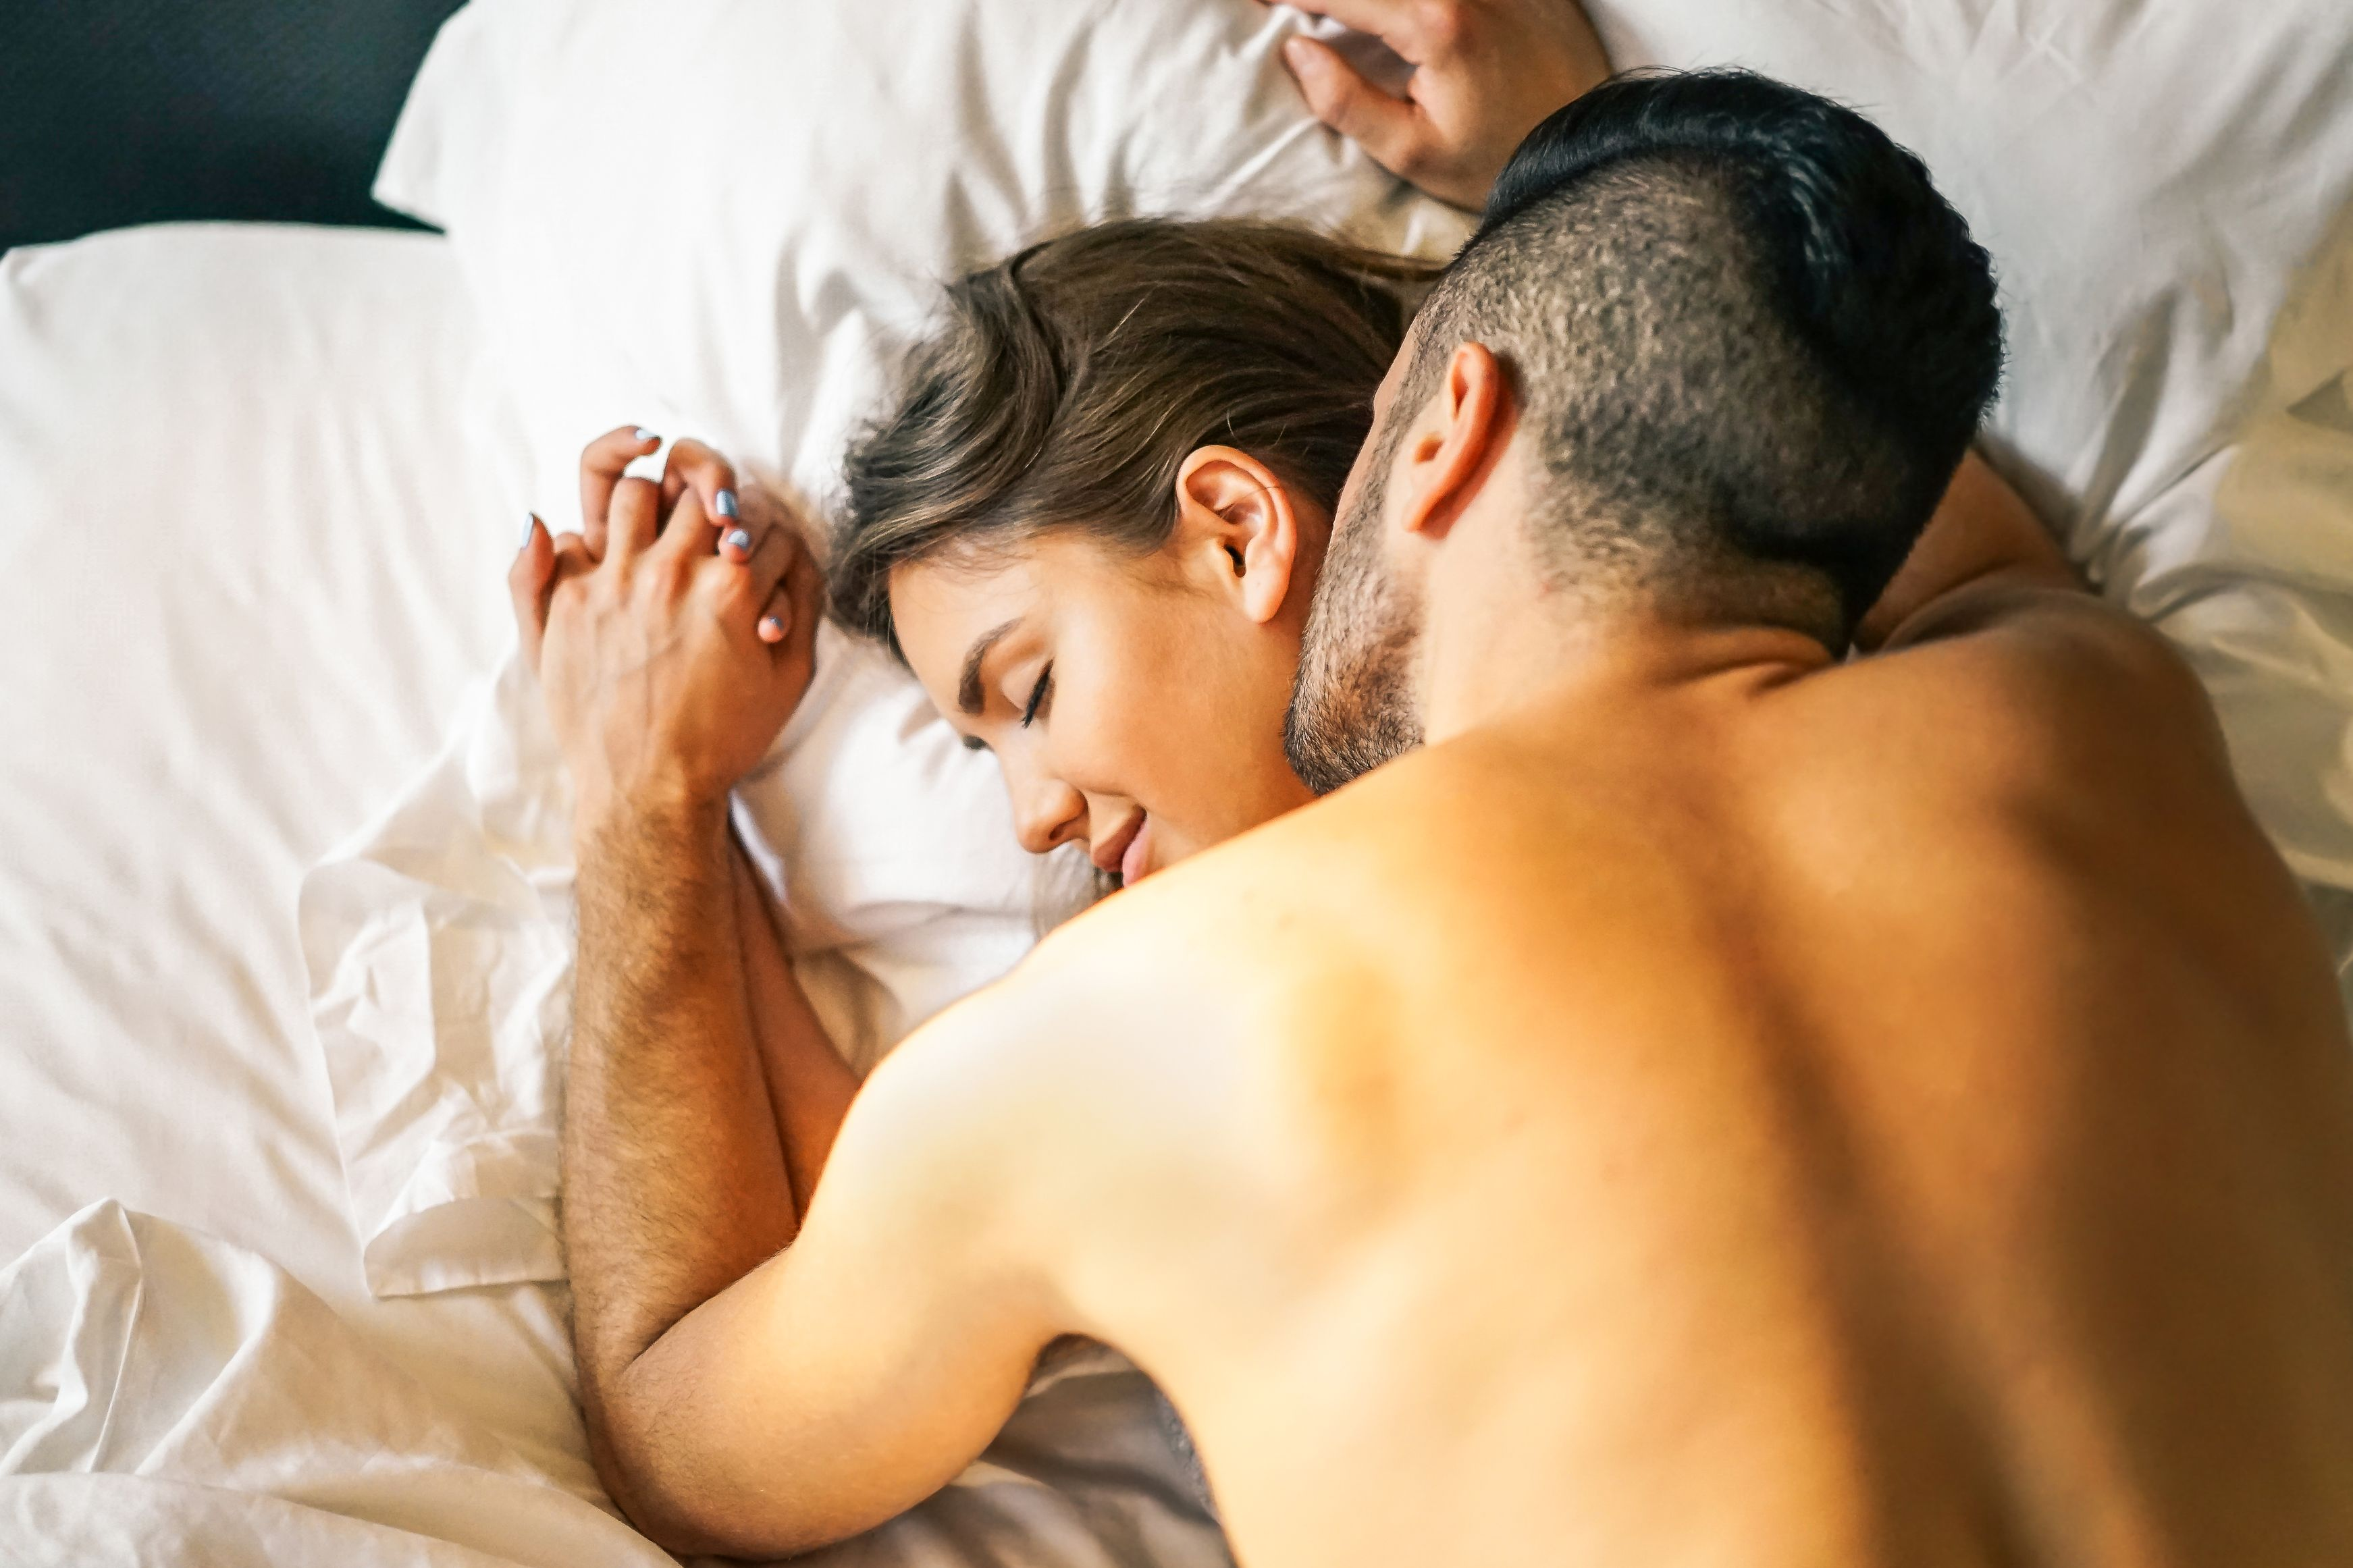 1 in 5 People Have Ended Intercourse Because Their Partner's 'Sexy' Talk Turned Them Off